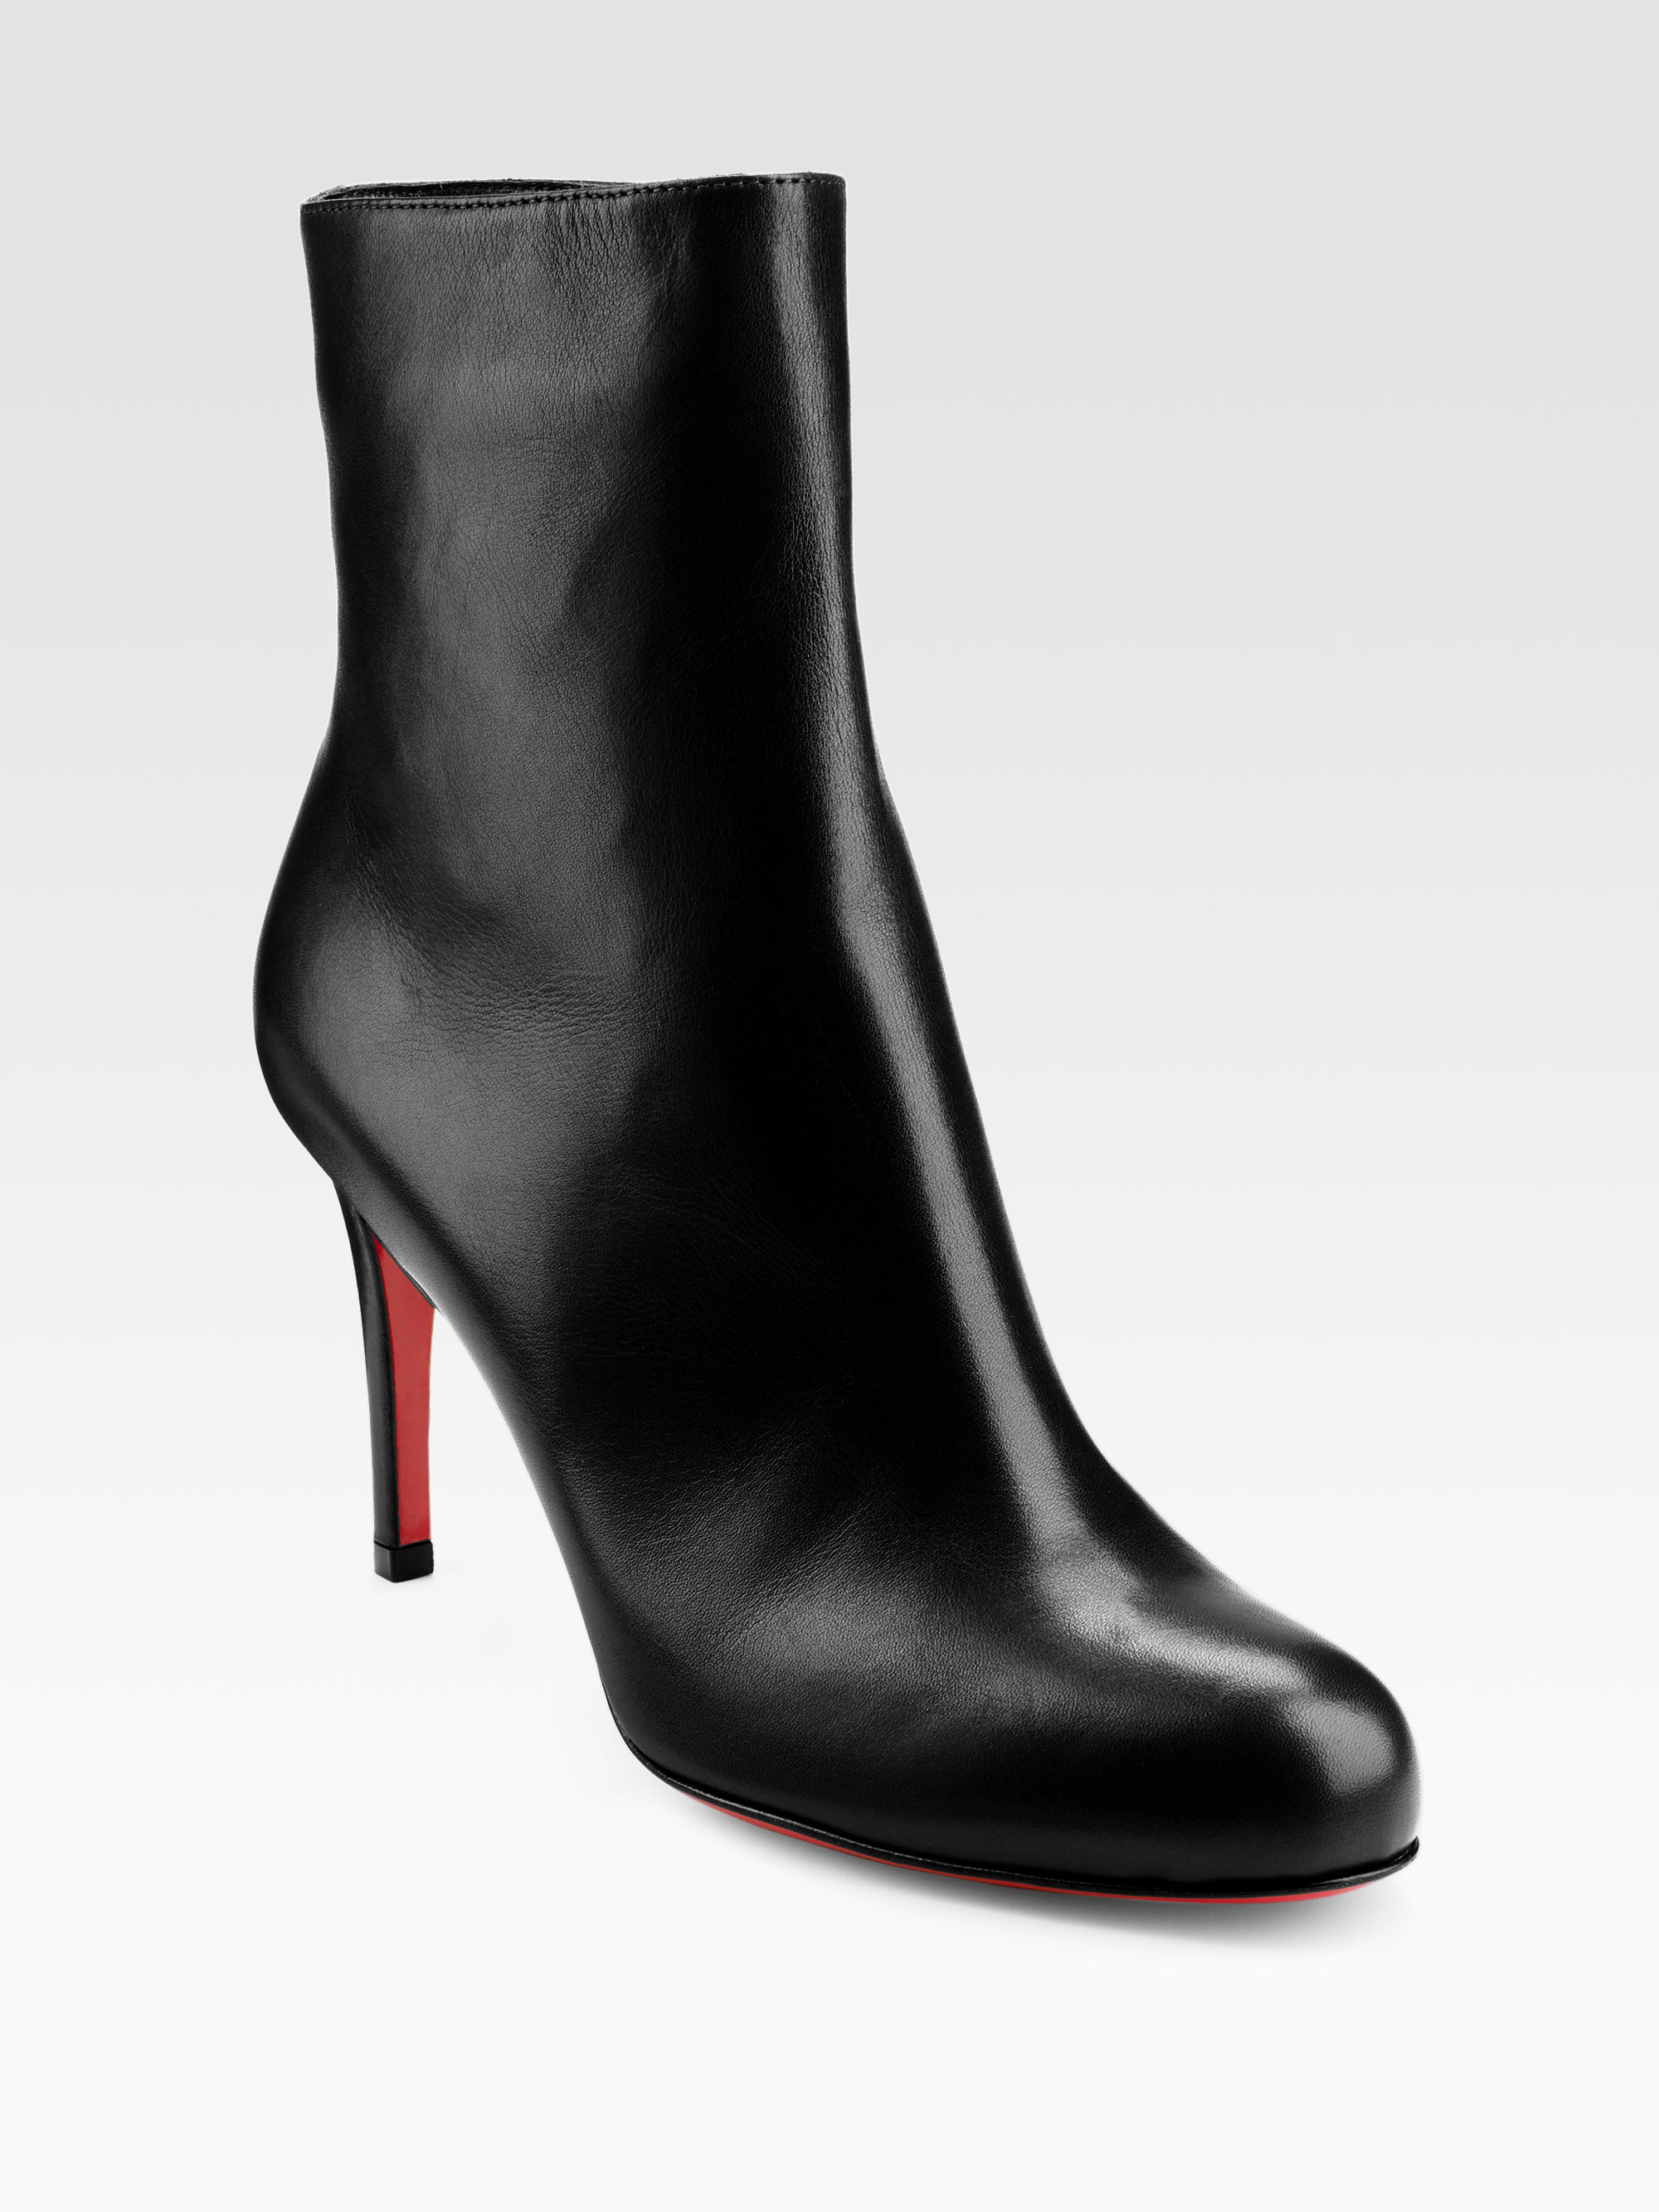 louboutin spikes sneakers - Christian louboutin Simple 85 Leather Ankle Boots in Black | Lyst